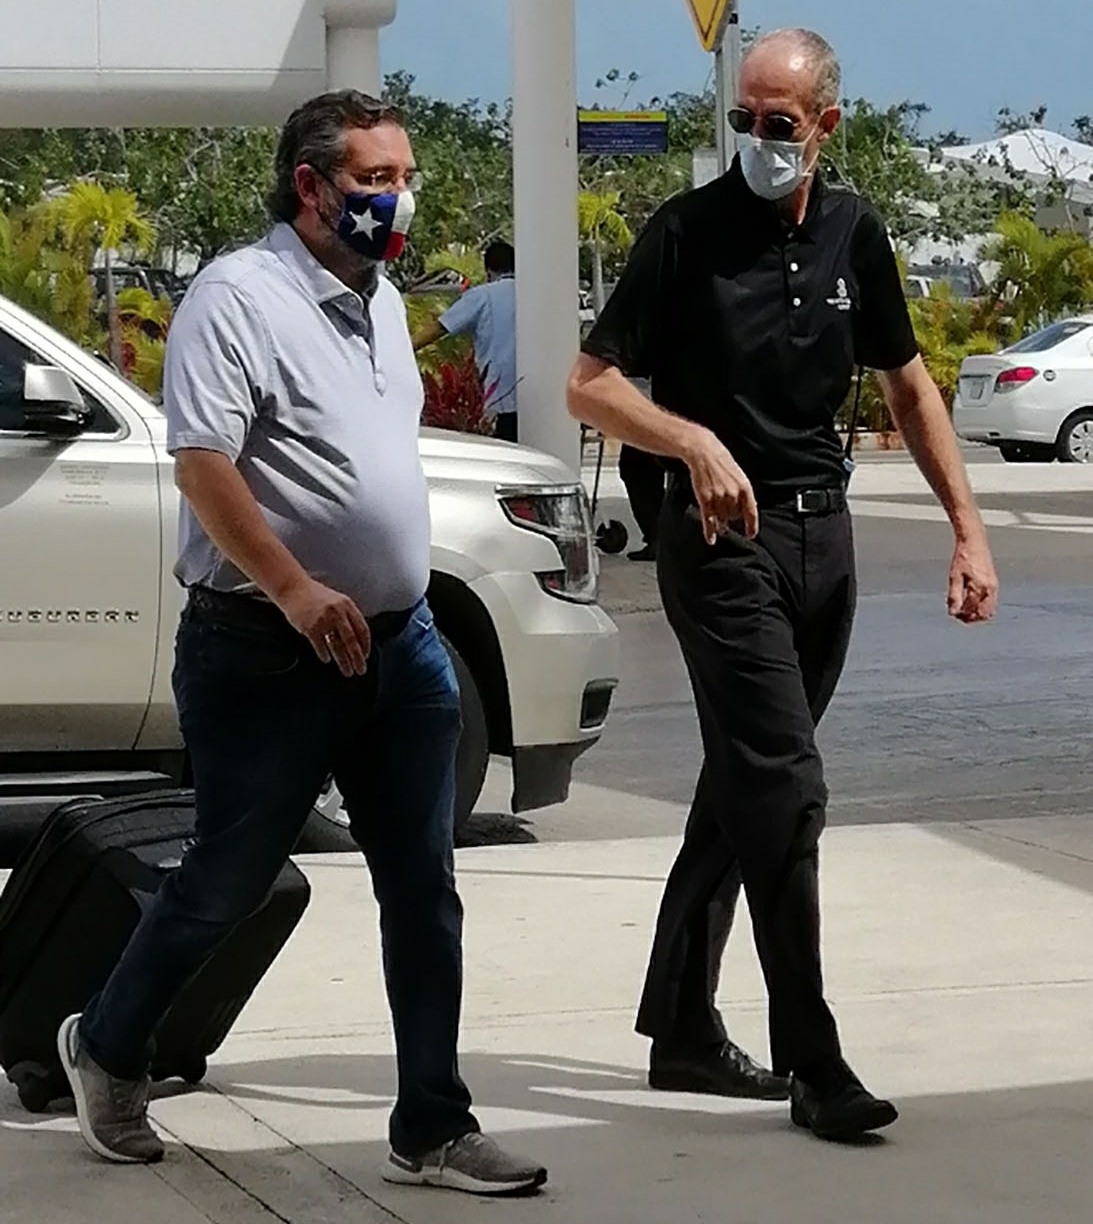 Ted Cruz wears Texas flag mask as he arrives at CanCun airport this morning ahead of flight back to Texas hours after landing in Mexico